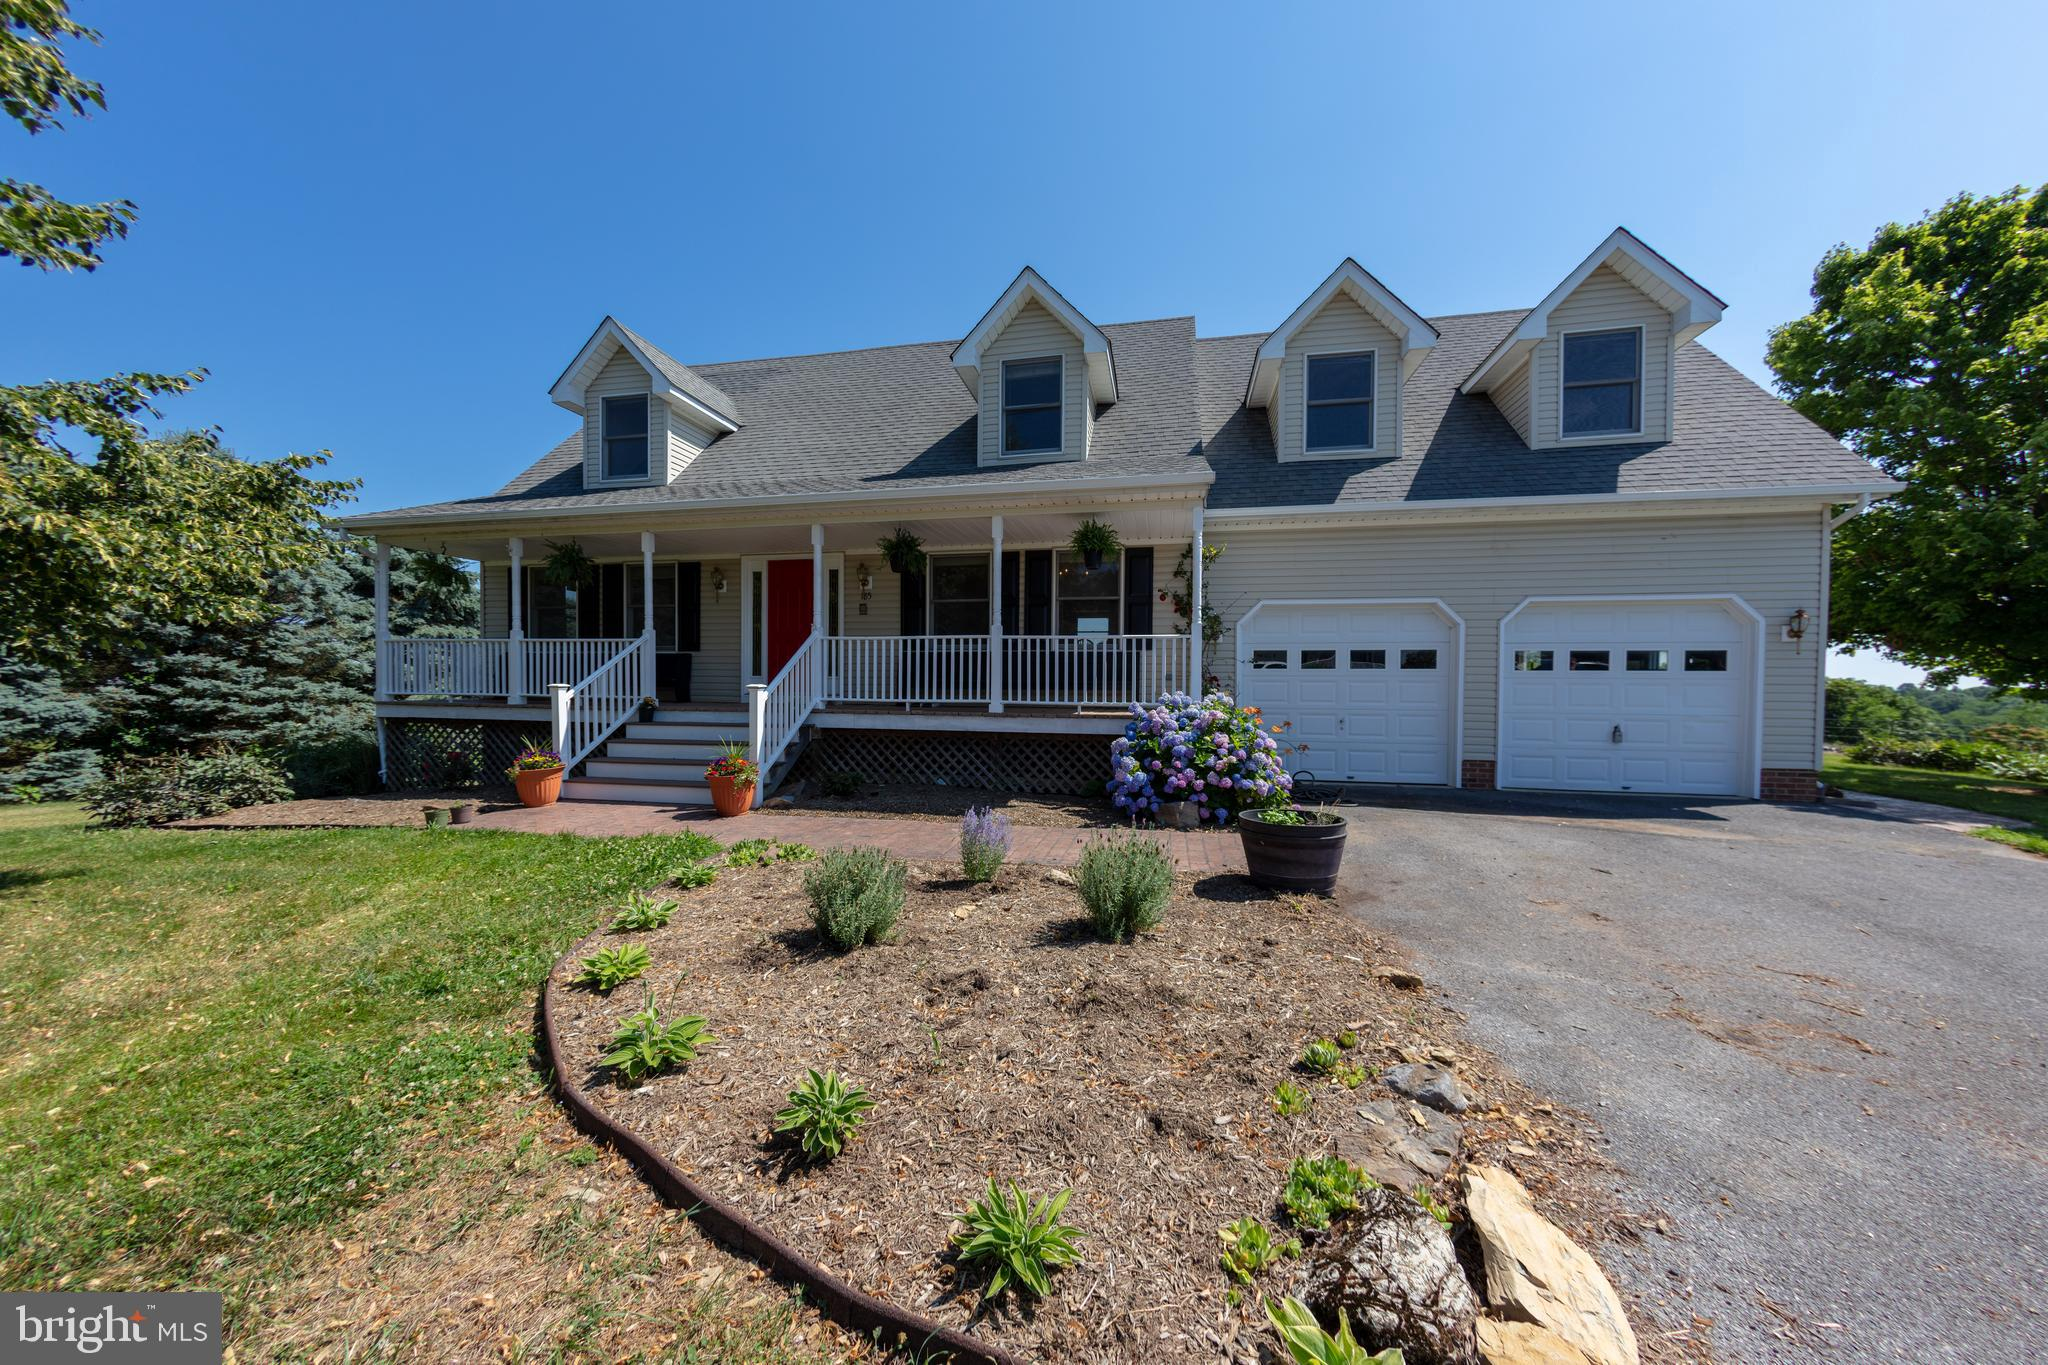 BEAUTIFUL VIEWS AND PRIVATE! You Will Not Find Another Property Like This One! Large Cape Cod, with